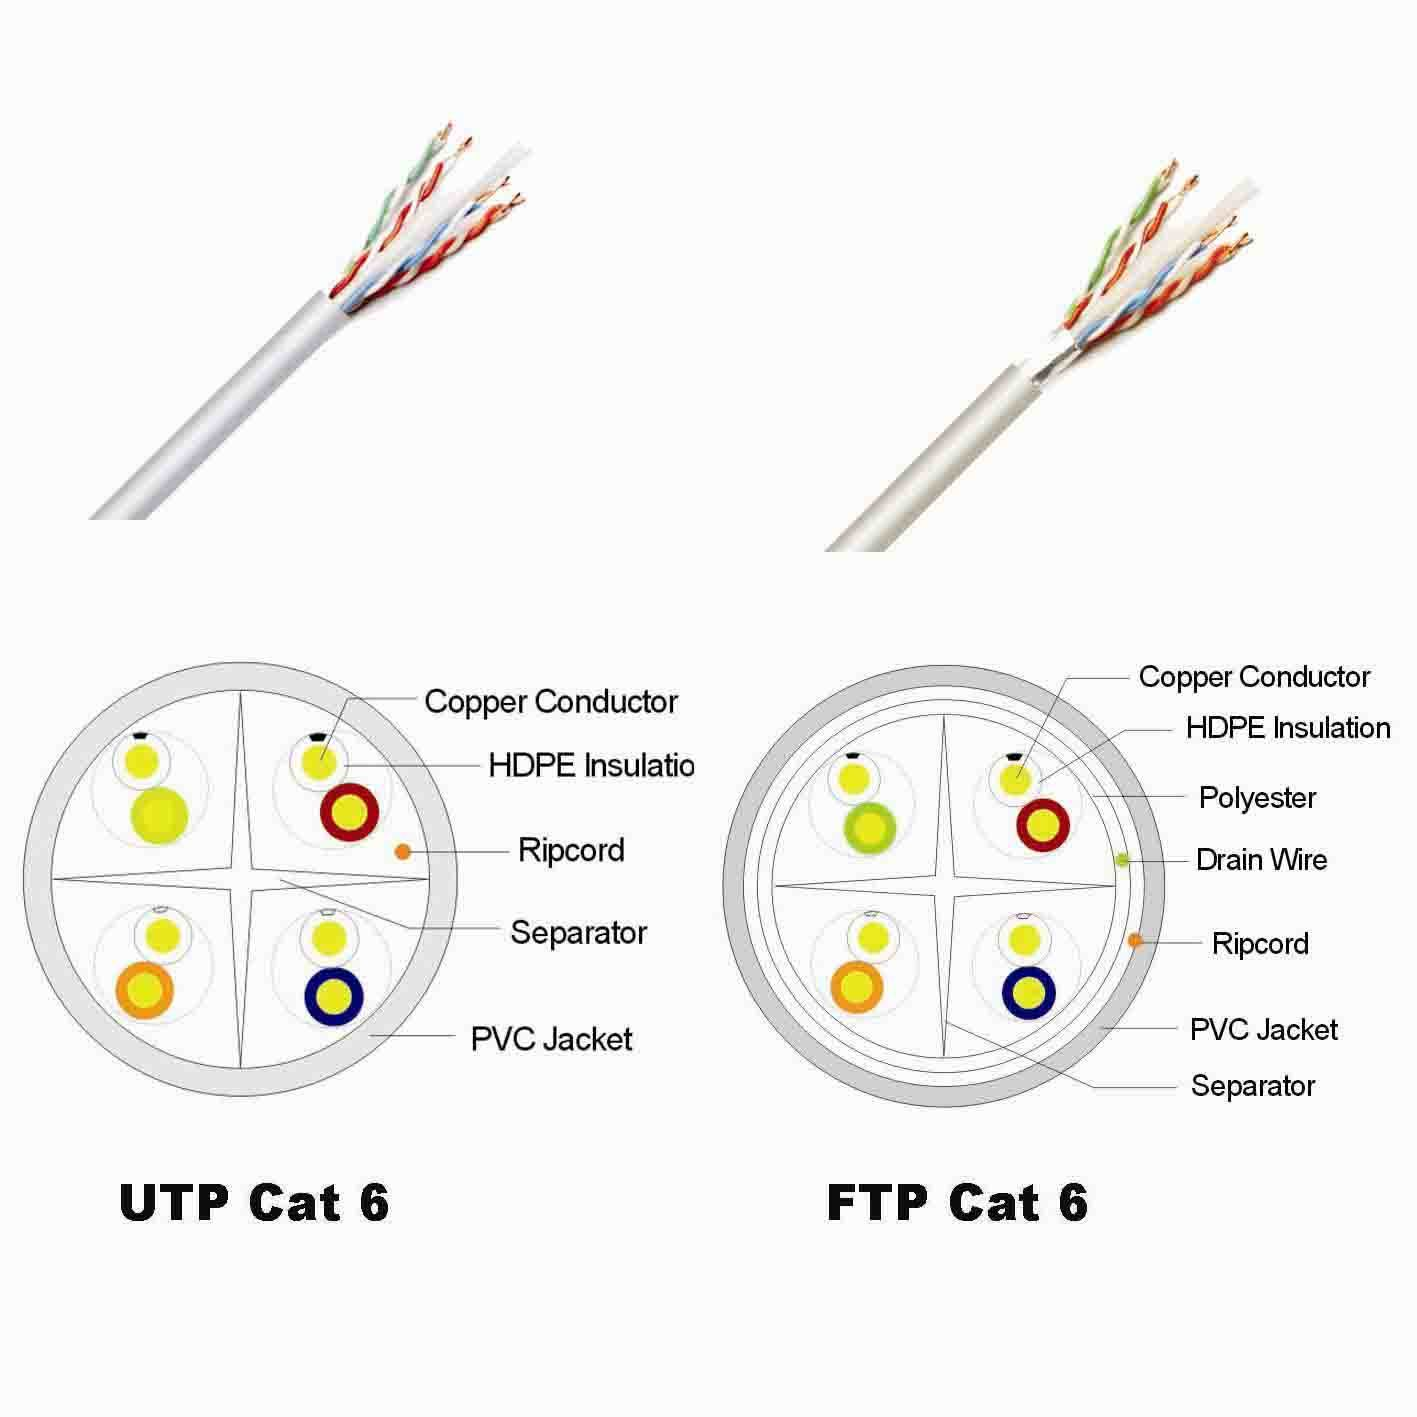 china utp ftp cat 6 china cat 6 lan cable With cat 6 wiring